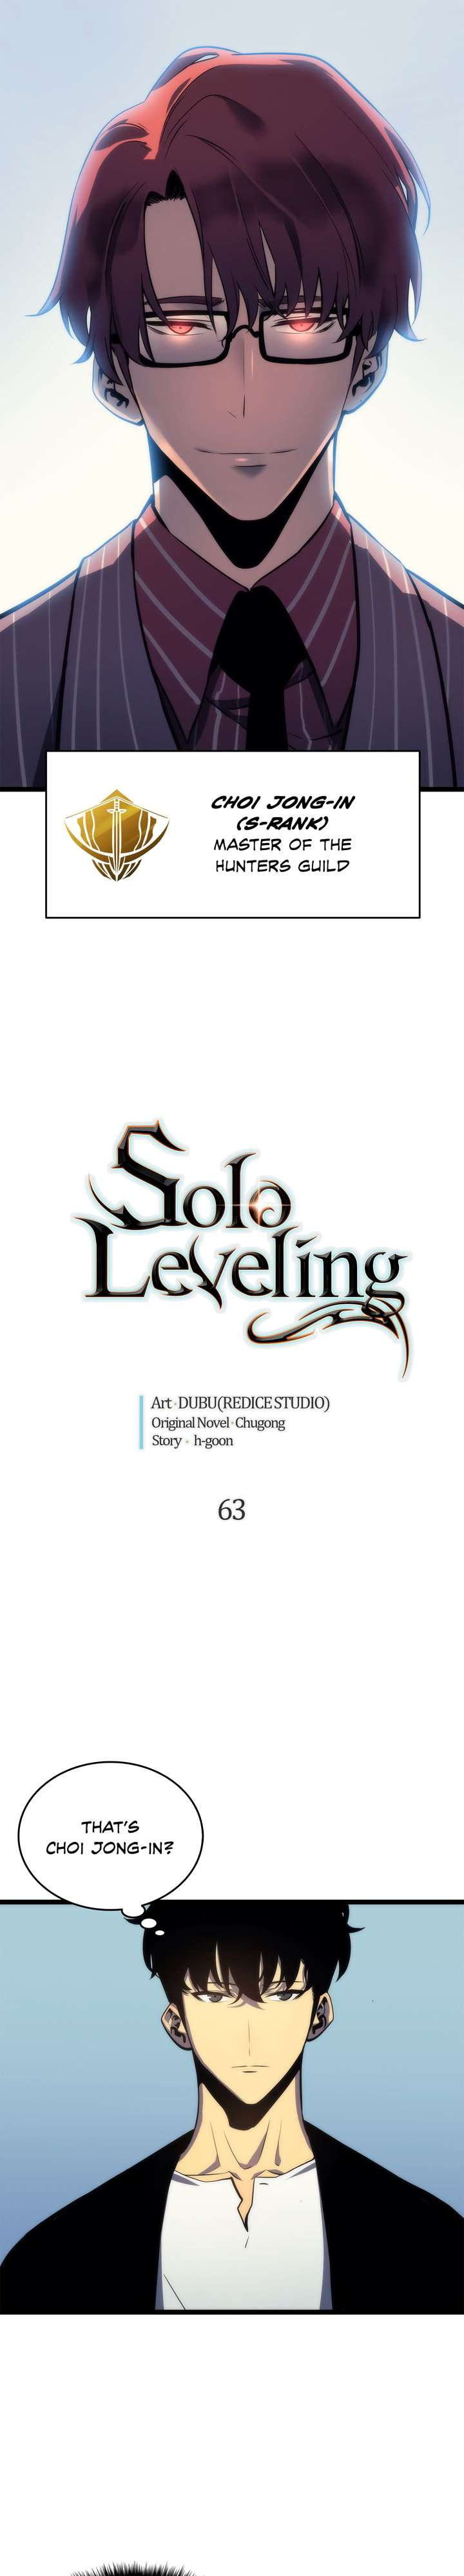 Solo Leveling Chapter 63 Page 2